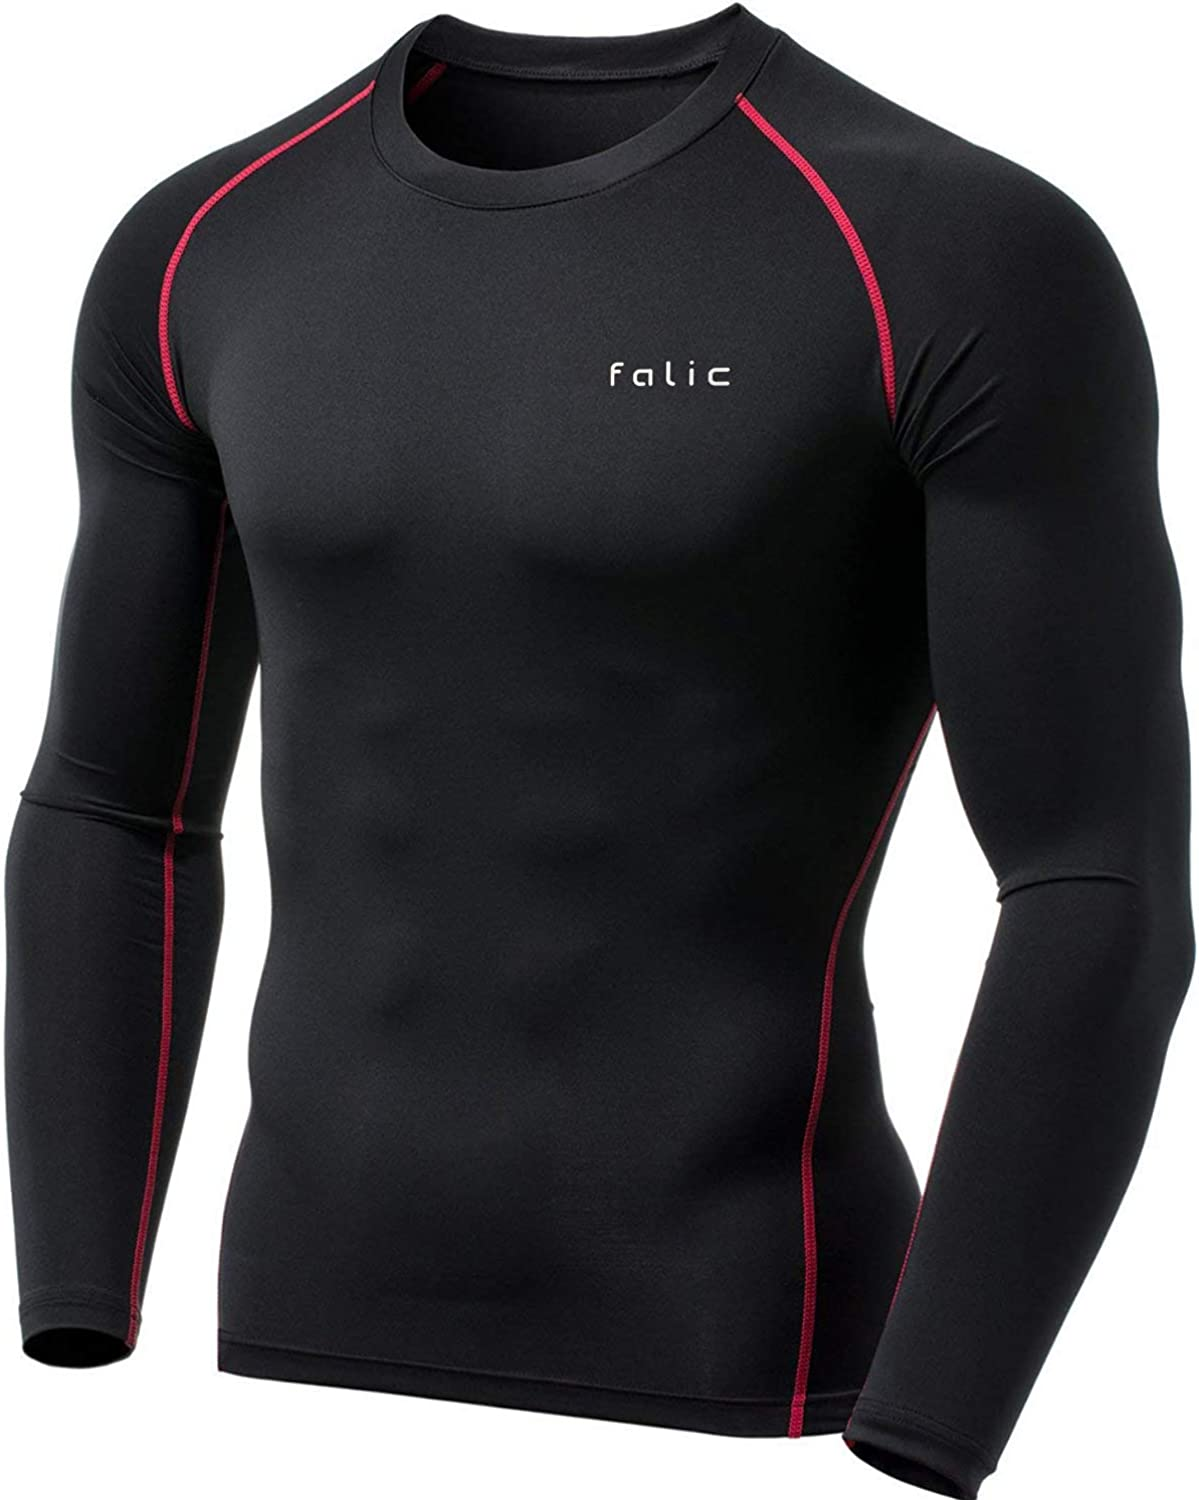 Falic Men's Long Sleeve Compression Shirts with Heat Retention Technology (Black and Red, L)